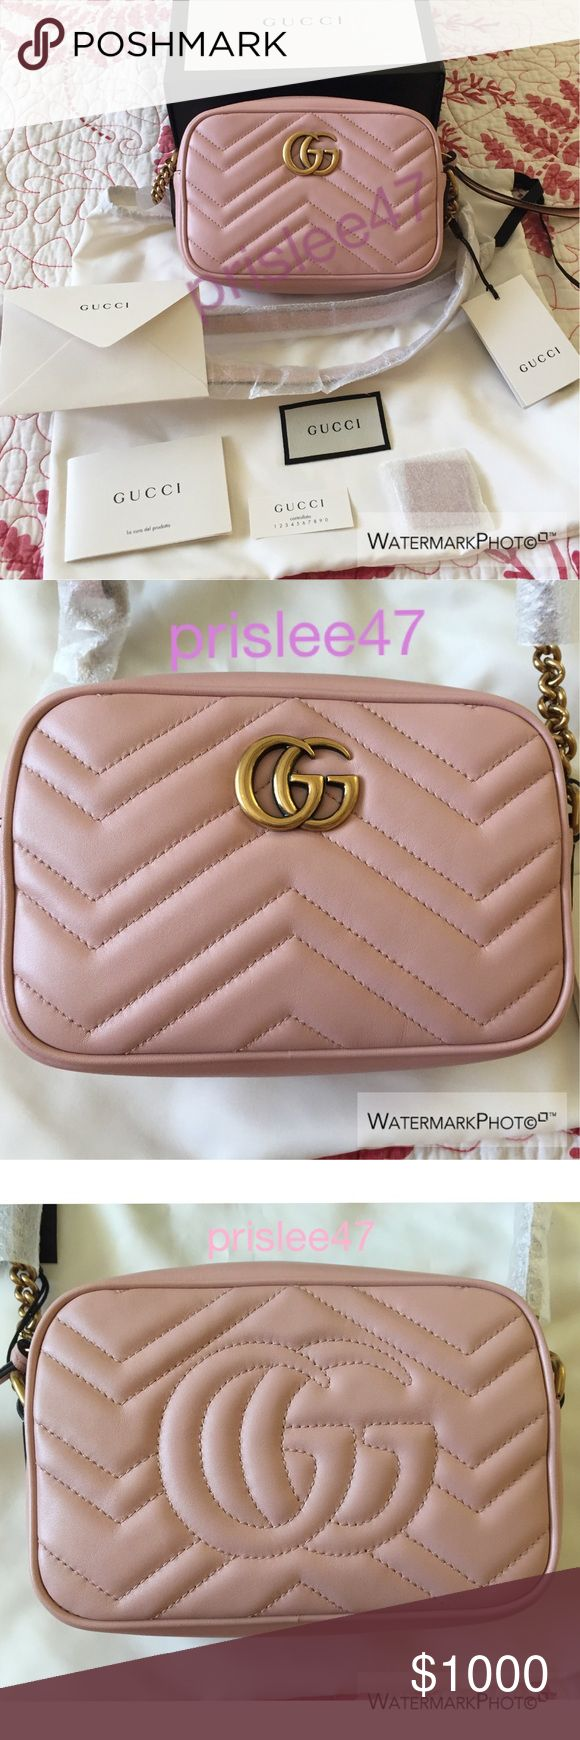 Authentic Gucci Marmont Mini in light pink Brand new with tag and strap wrapping still attached. Comes with box, dust bag, everything else that came in the bag as pictured. Purchased from a UK seller who bought it from the official Gucci UK website. Retails for $980 plus tax. This is the lowest I will go on here. Please let me know if you have any questions. $850 on Ⓜ️. $820 on 🅿. No trades. Gucci Bags Crossbody Bags